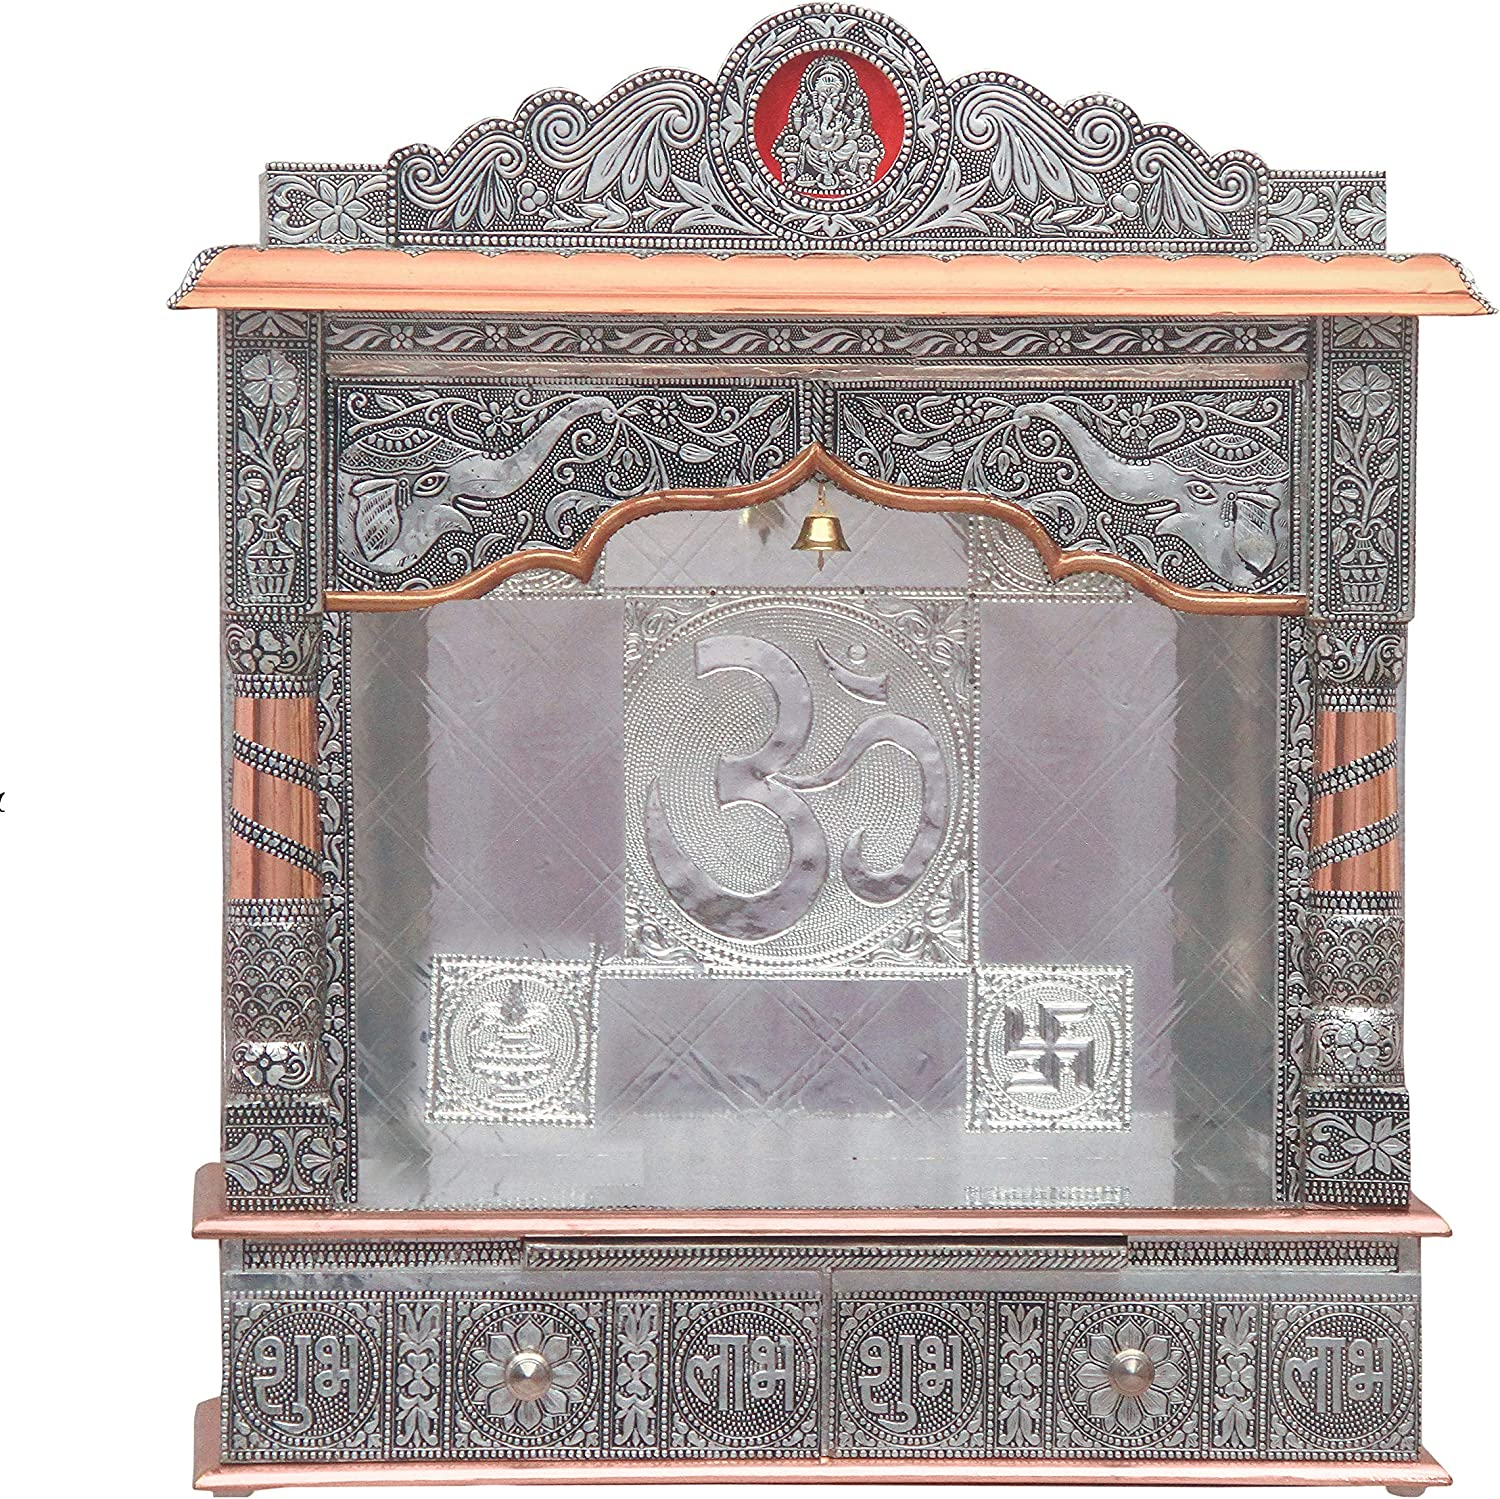 Home Pooja Wooden Mandir with Copper Oxidized Plated Puja Temple - Fully Assembled - 22 Inches Open